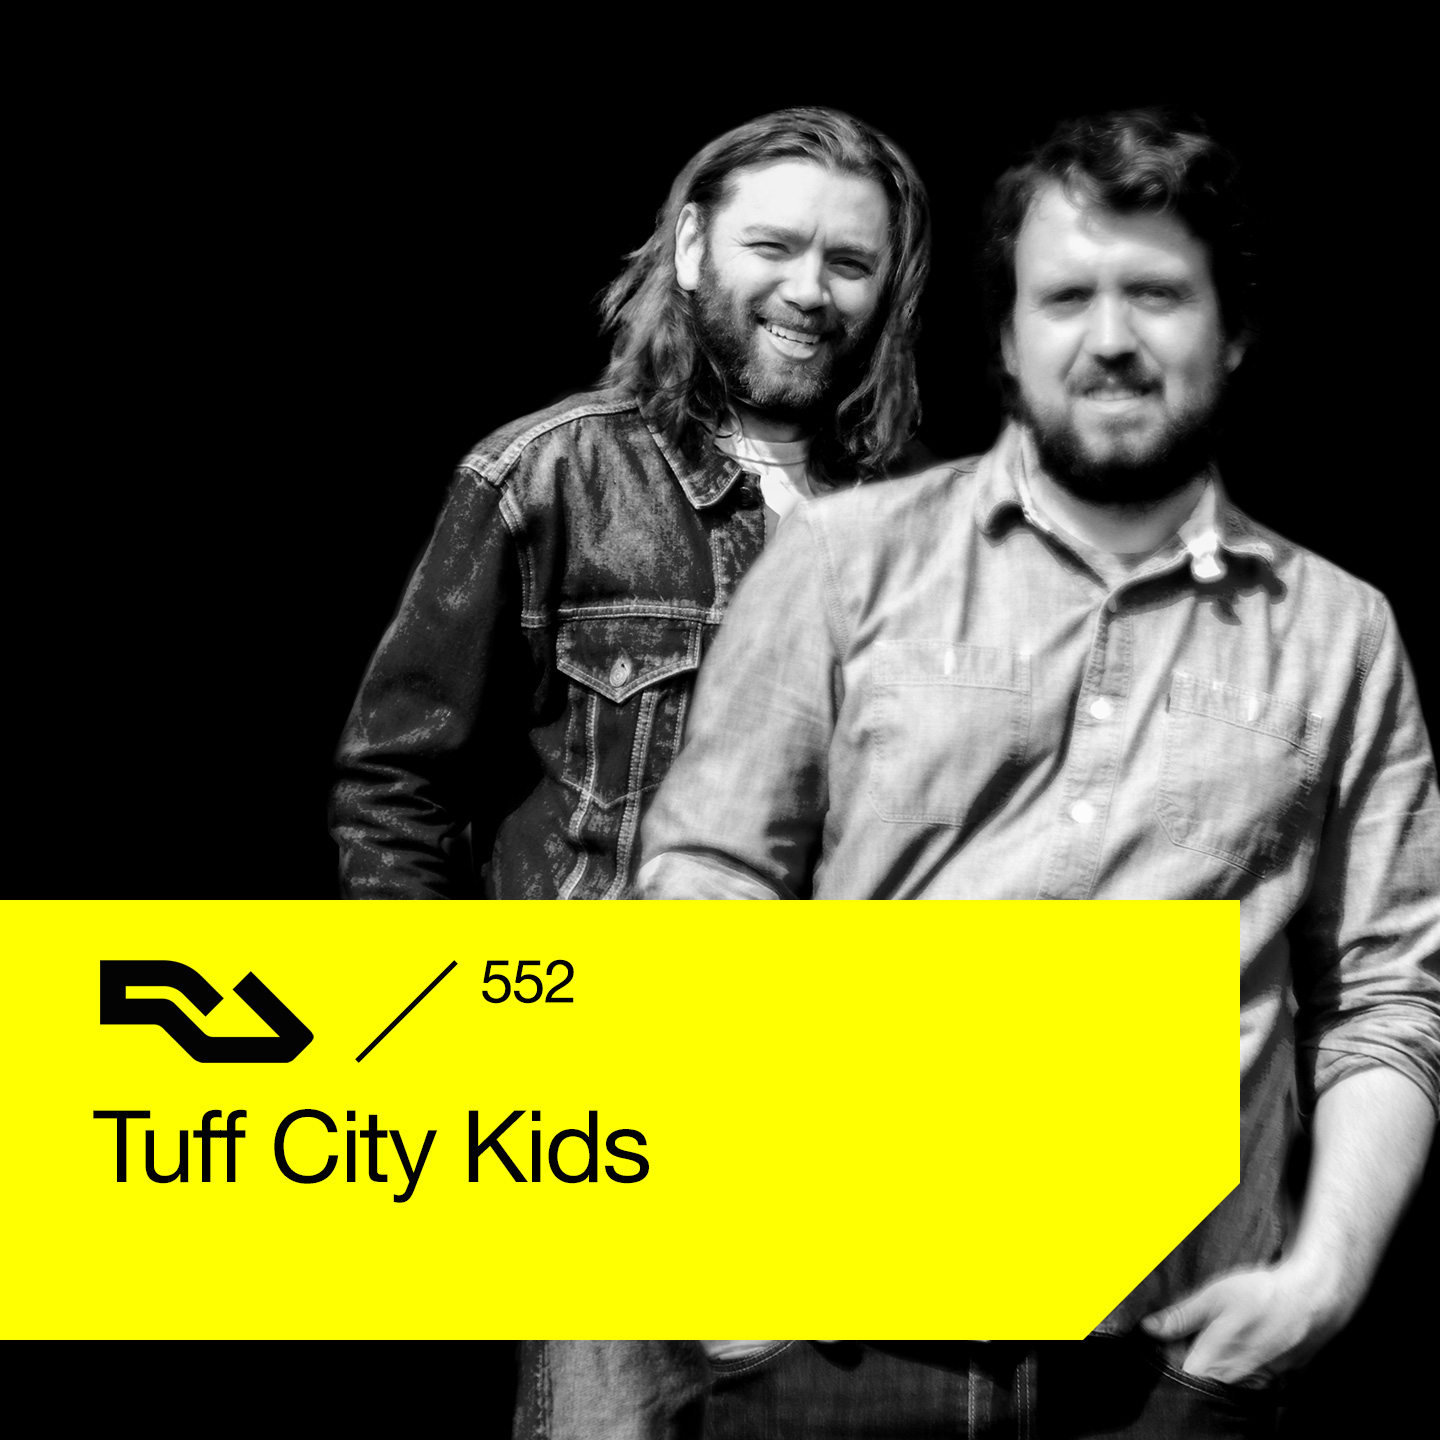 RA.552 Tuff City Kids